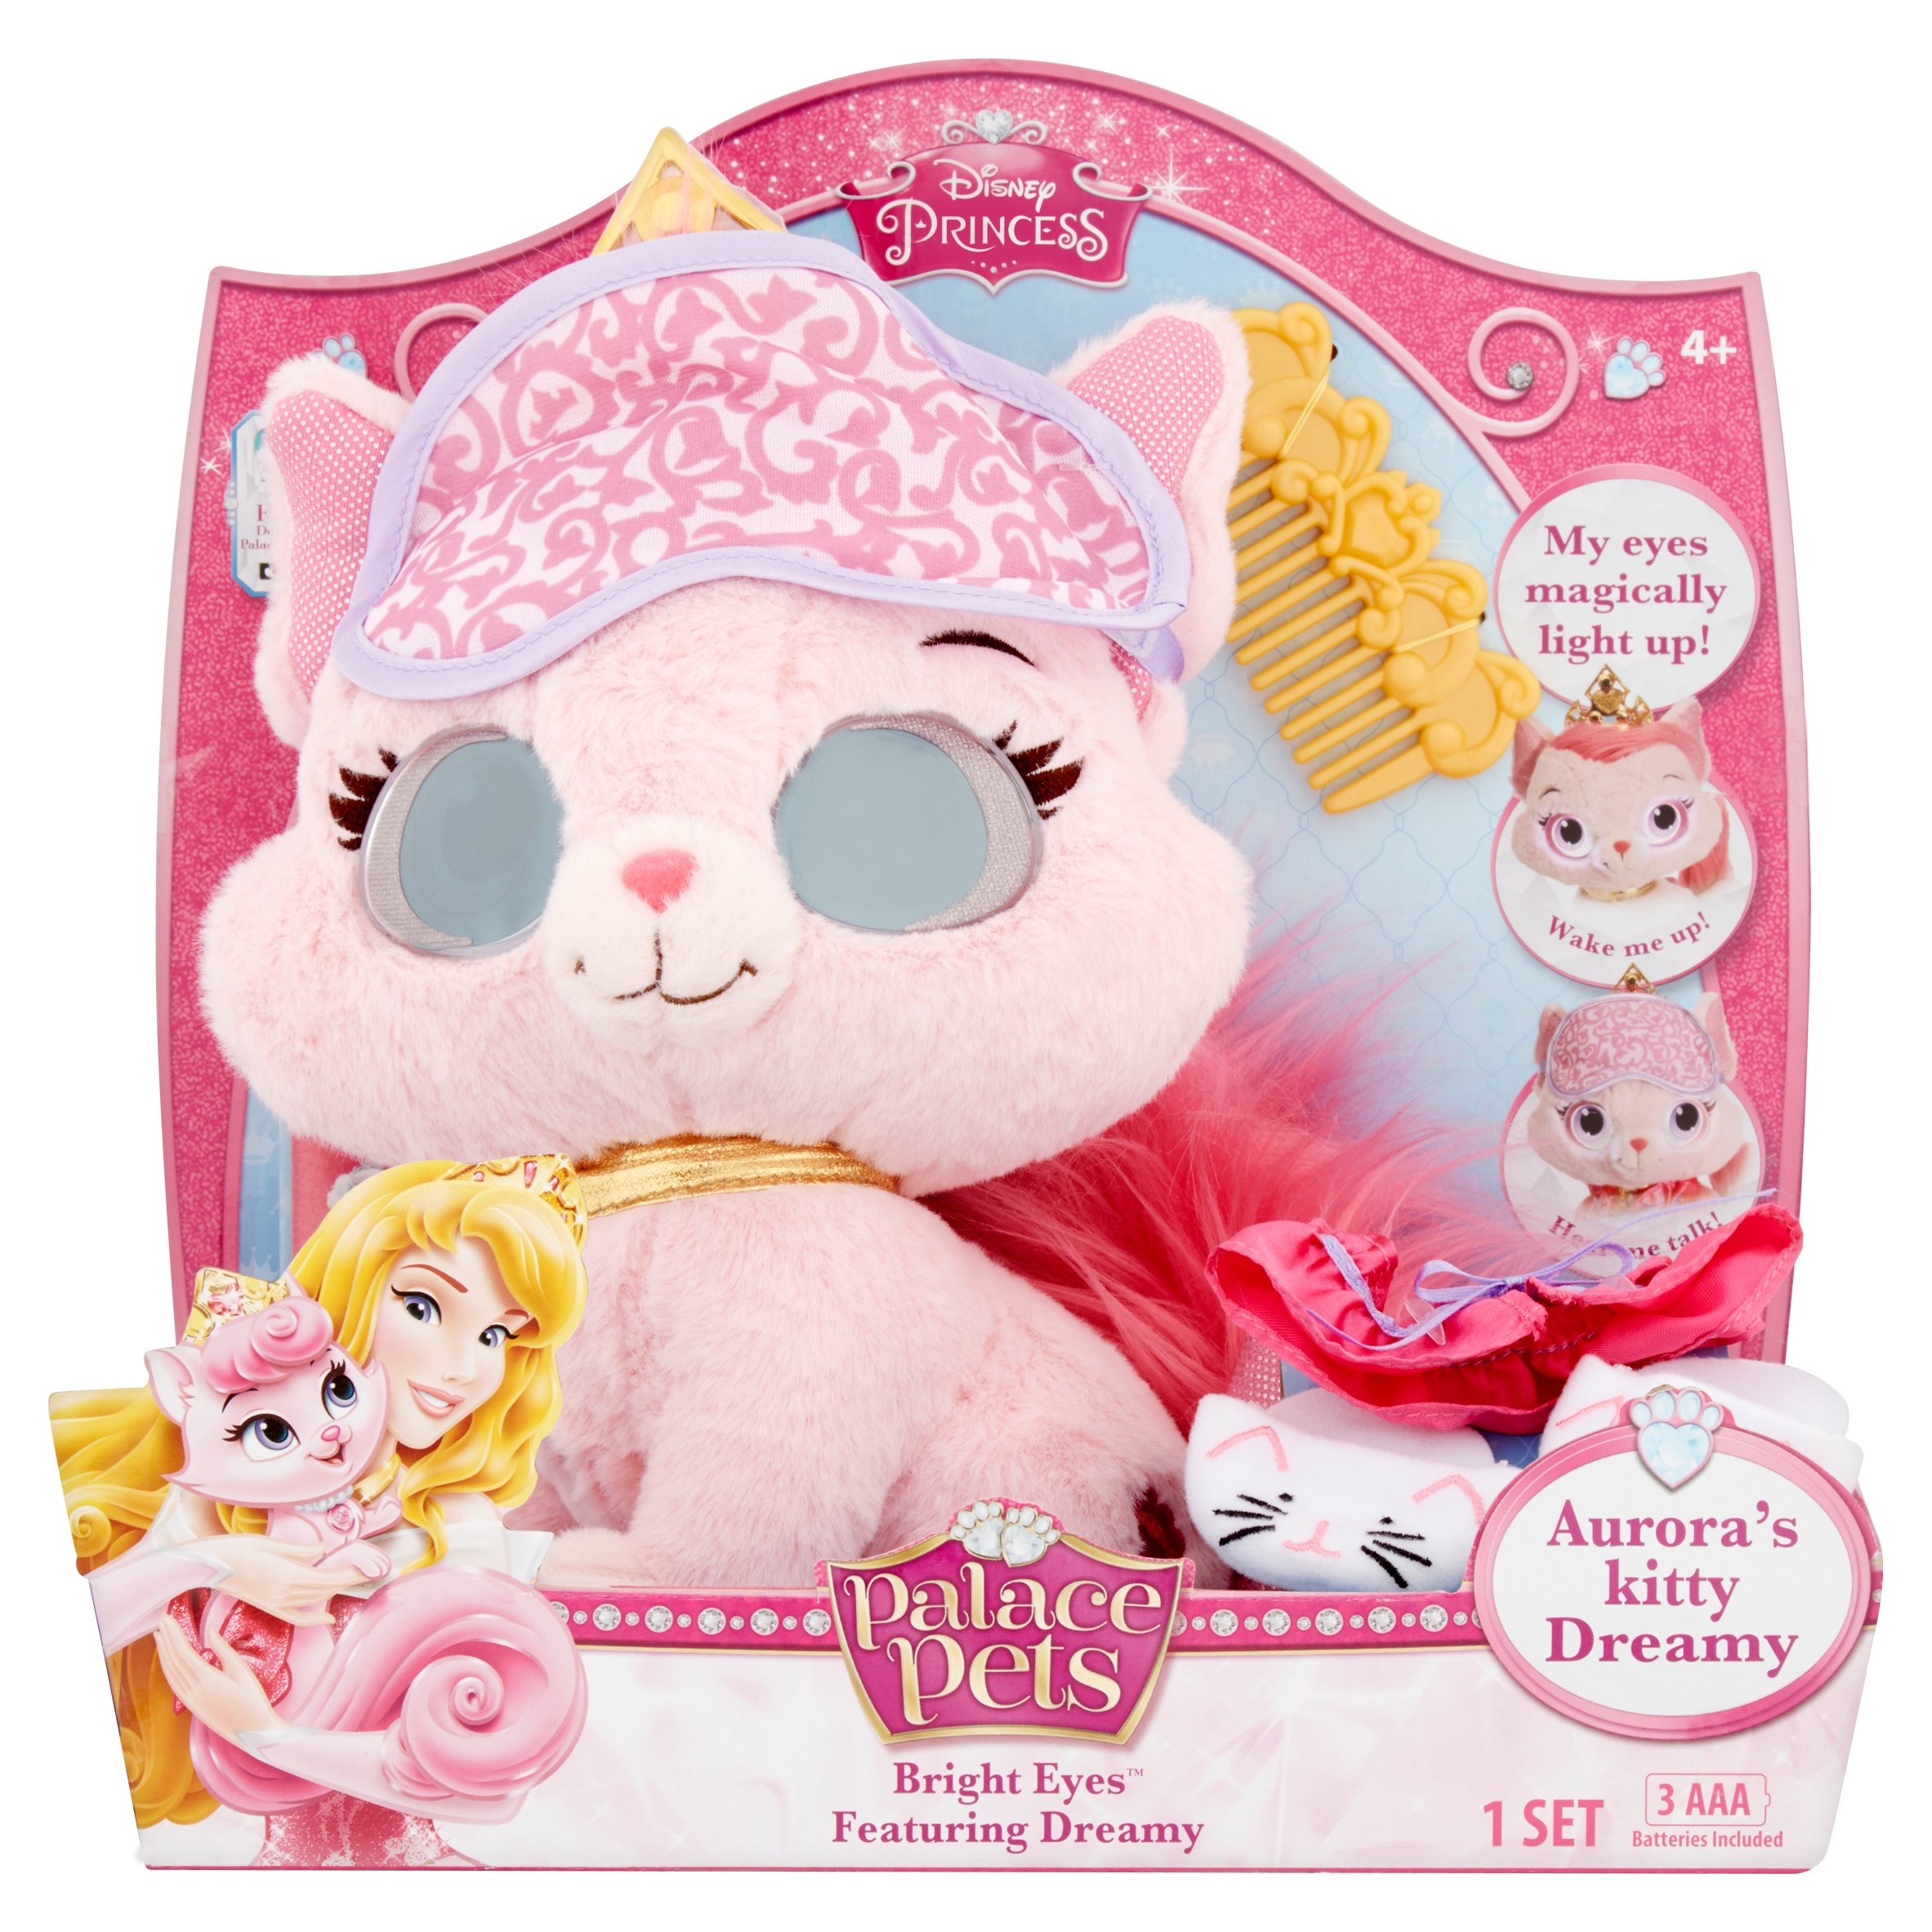 Disney Princess Palace Pets Bright Eyes Aurora's Kitty Dreamy Toy Set 4+